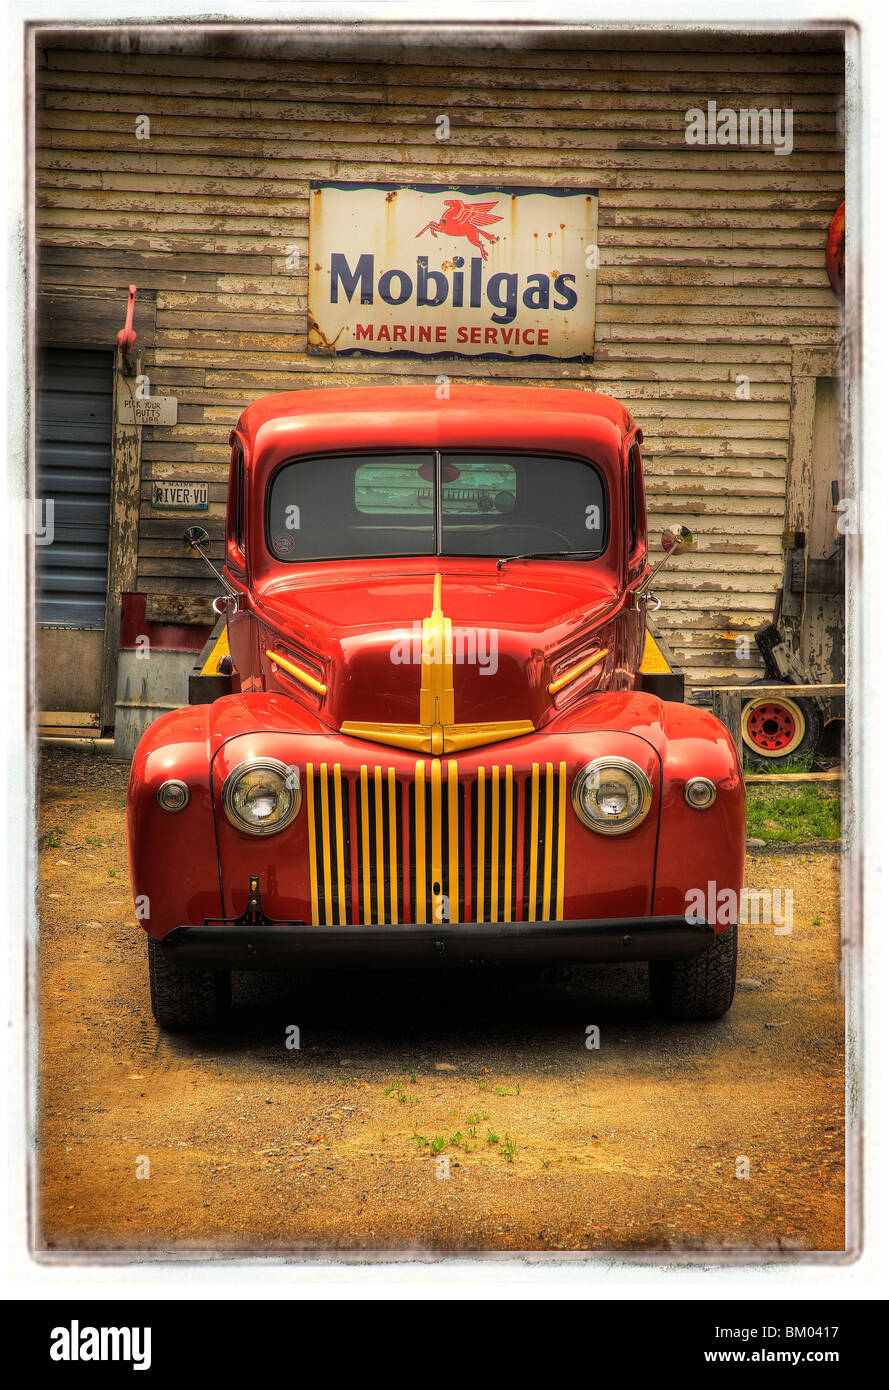 Classic old red truck parked in front of a Mobilgas sign. - Stock Image